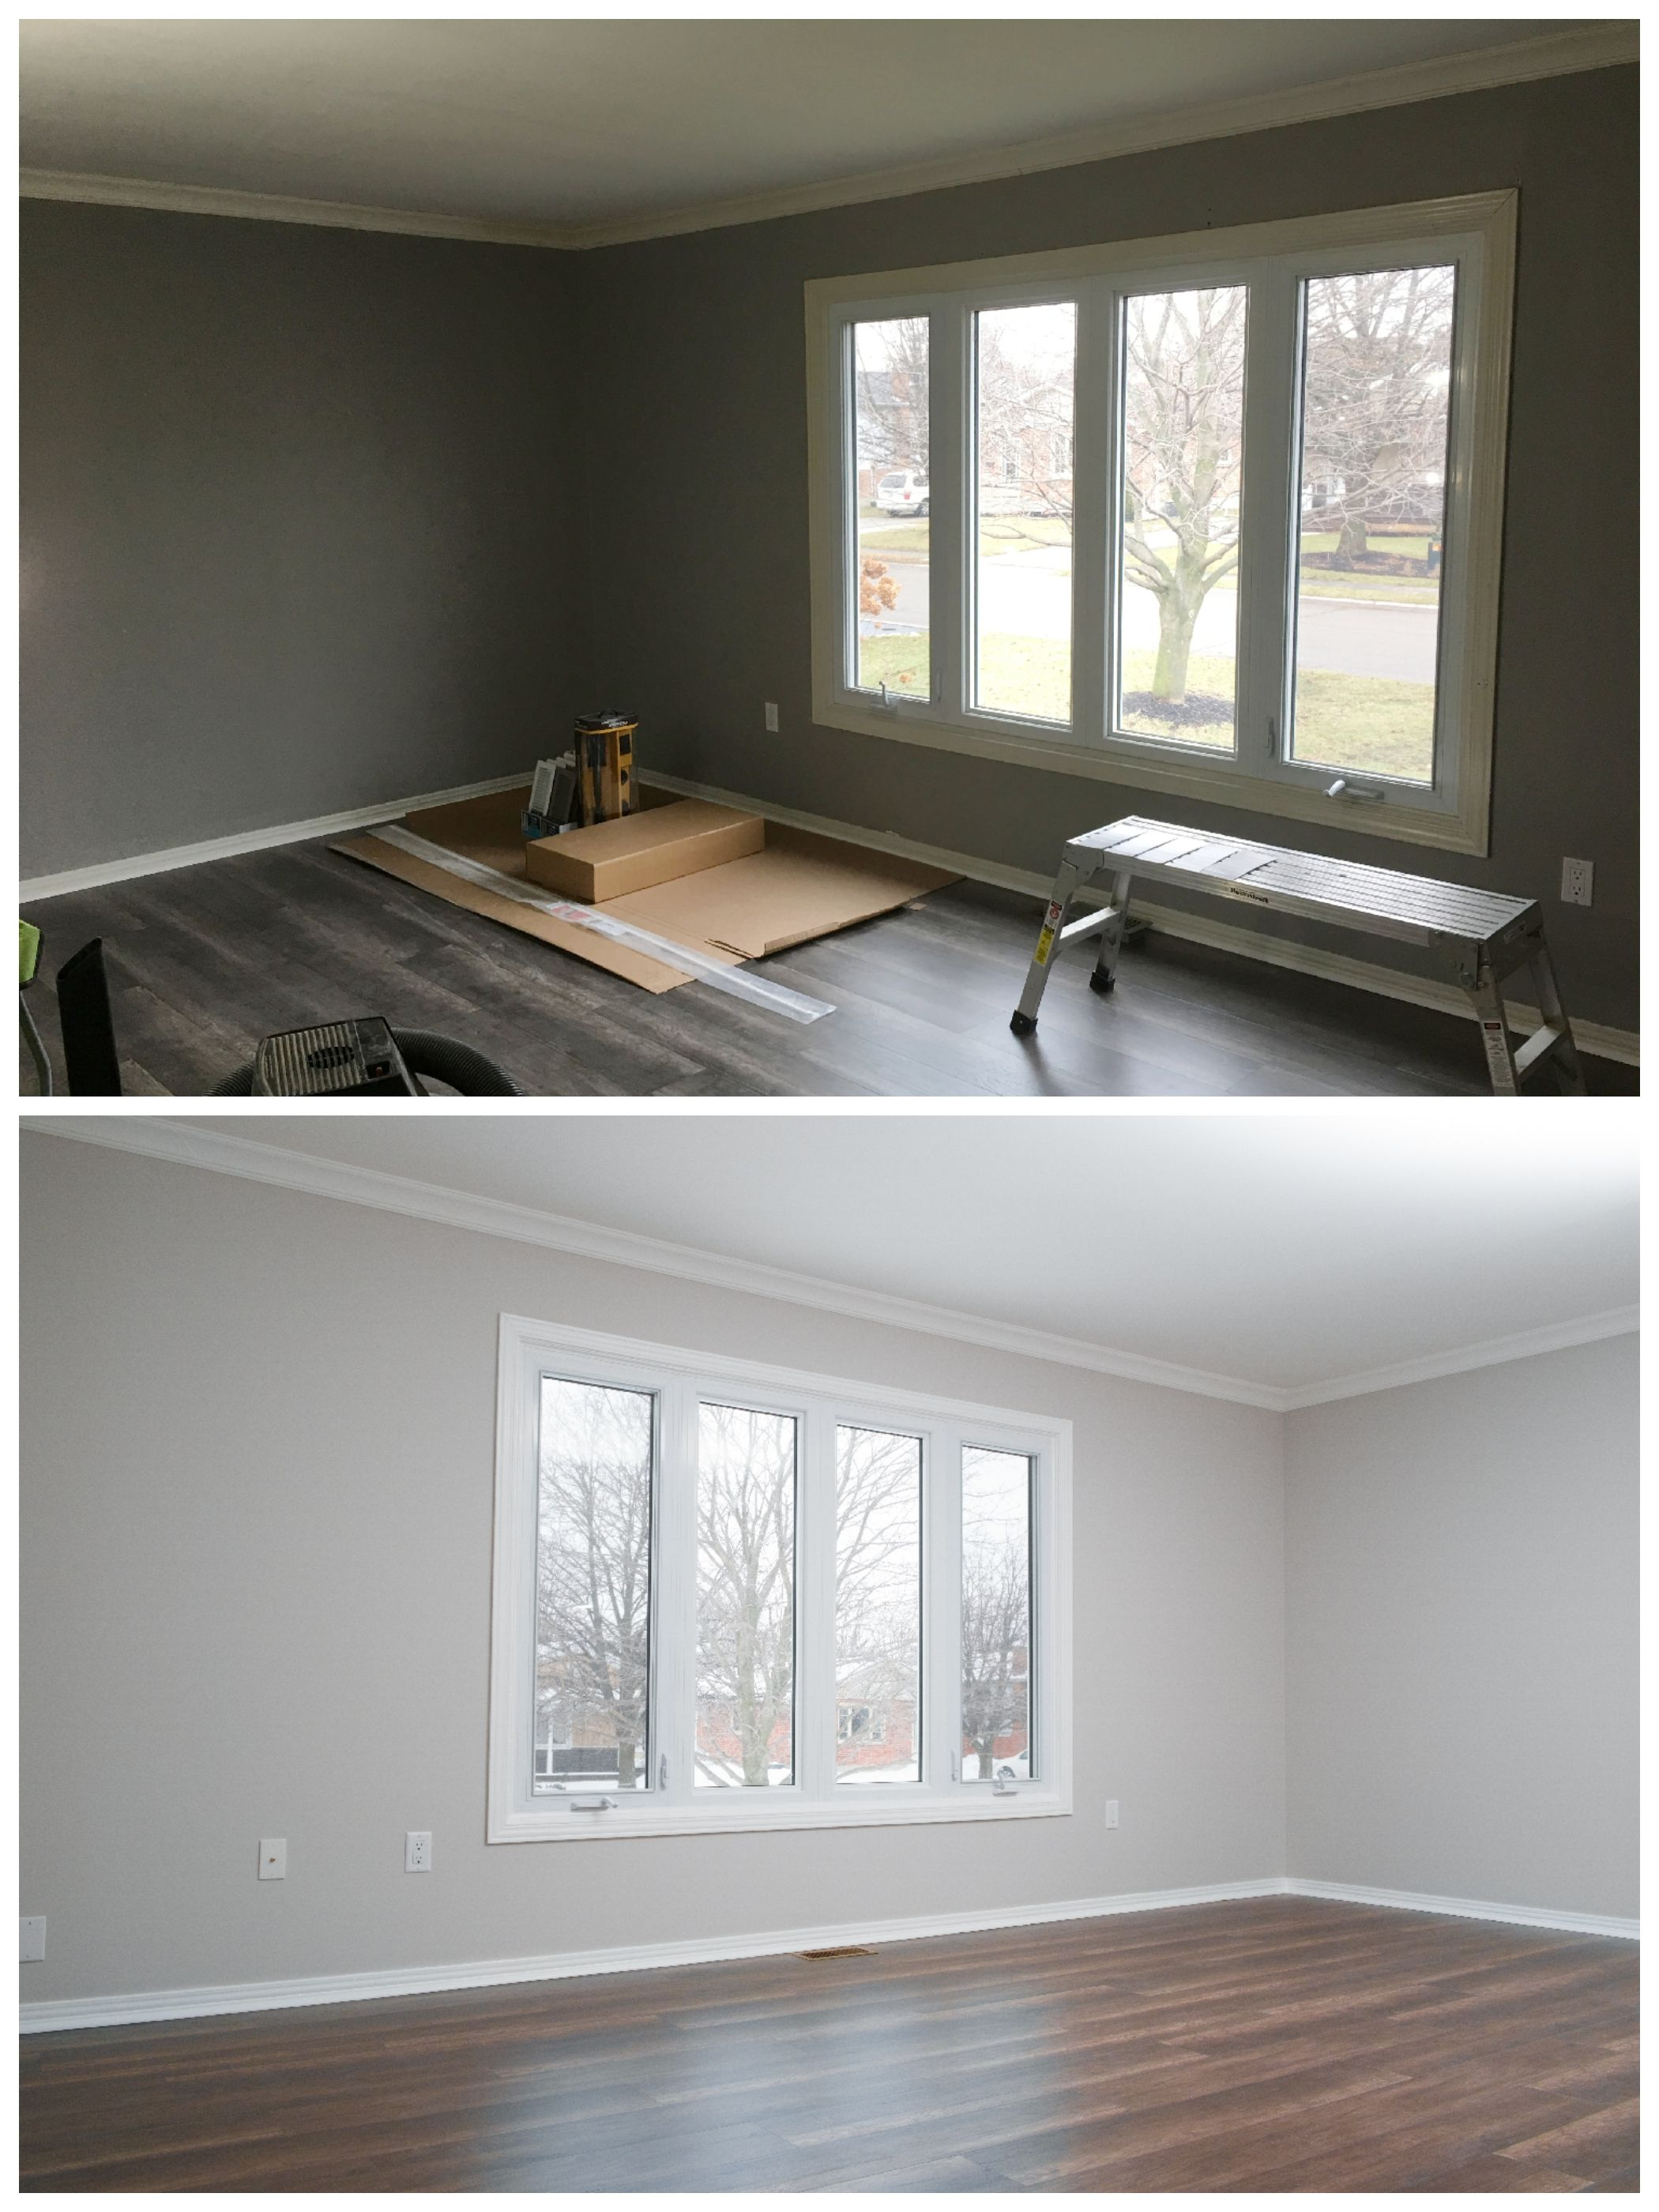 Pairing A Neutral Wall Colour With Clean White Trim And Ceiling Paint Opened This E Up Making It Ear Larger Colors Living Area